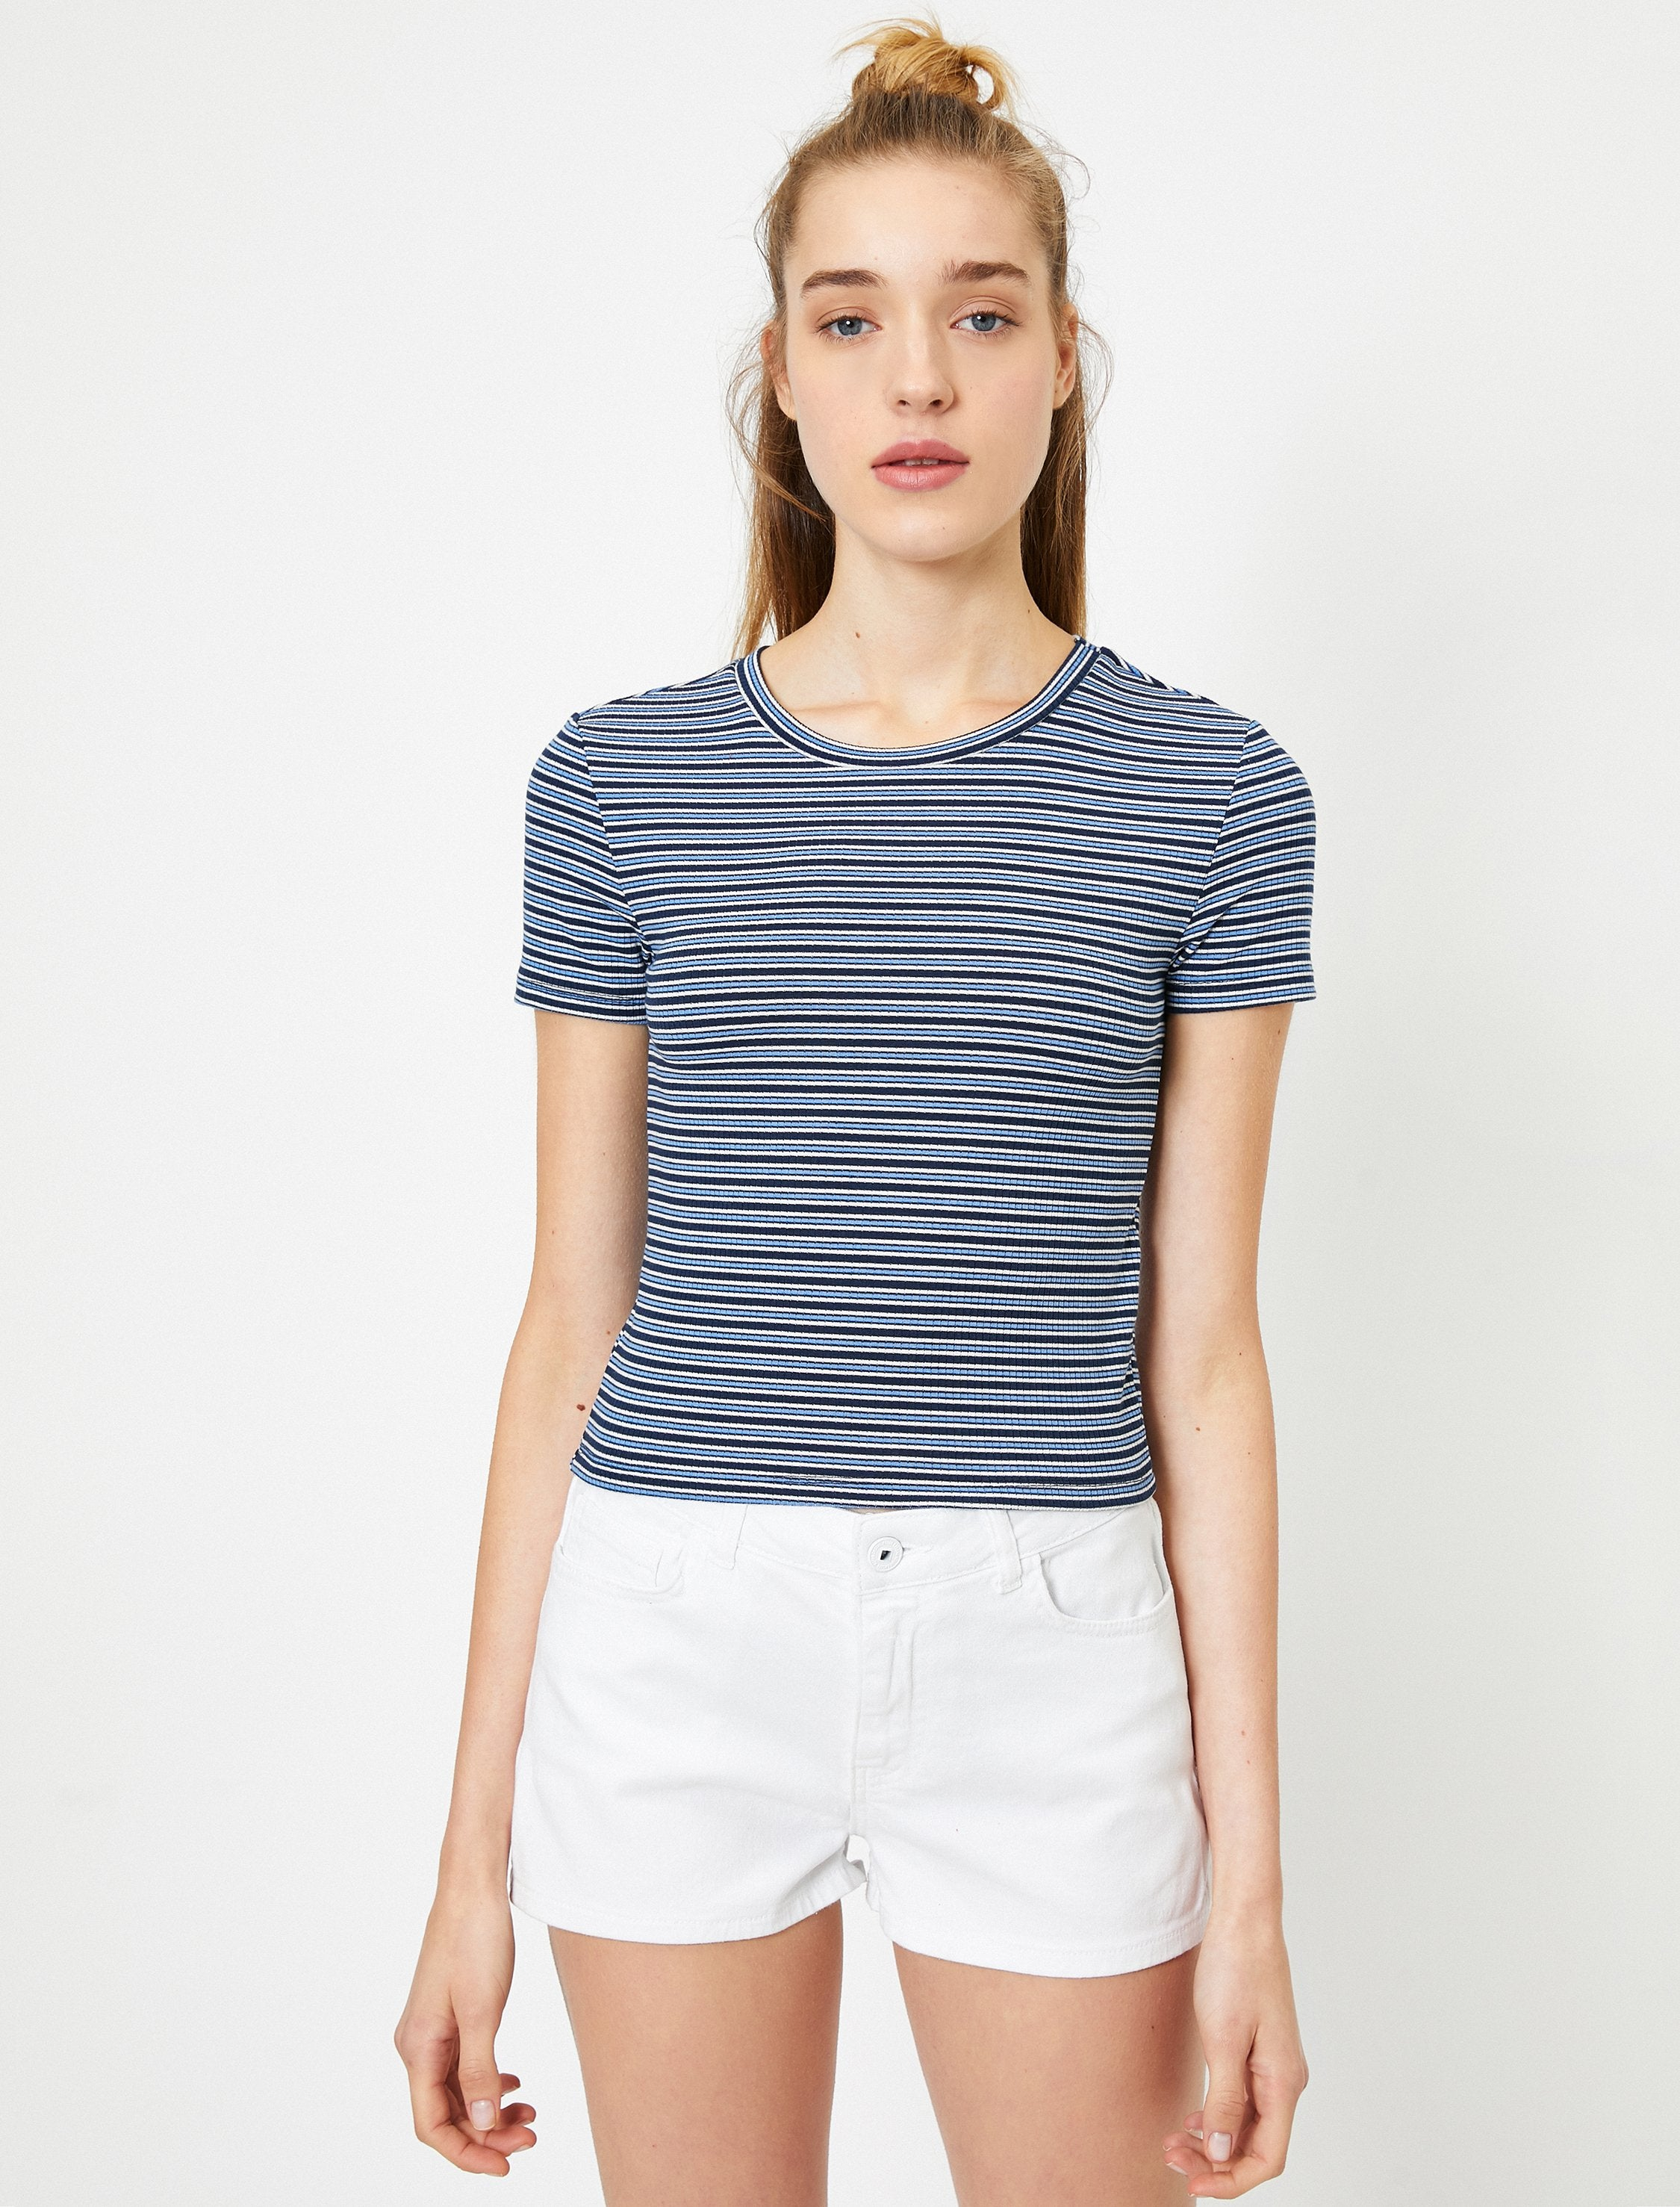 Fitted Crop Tshirt in Navy Stripes